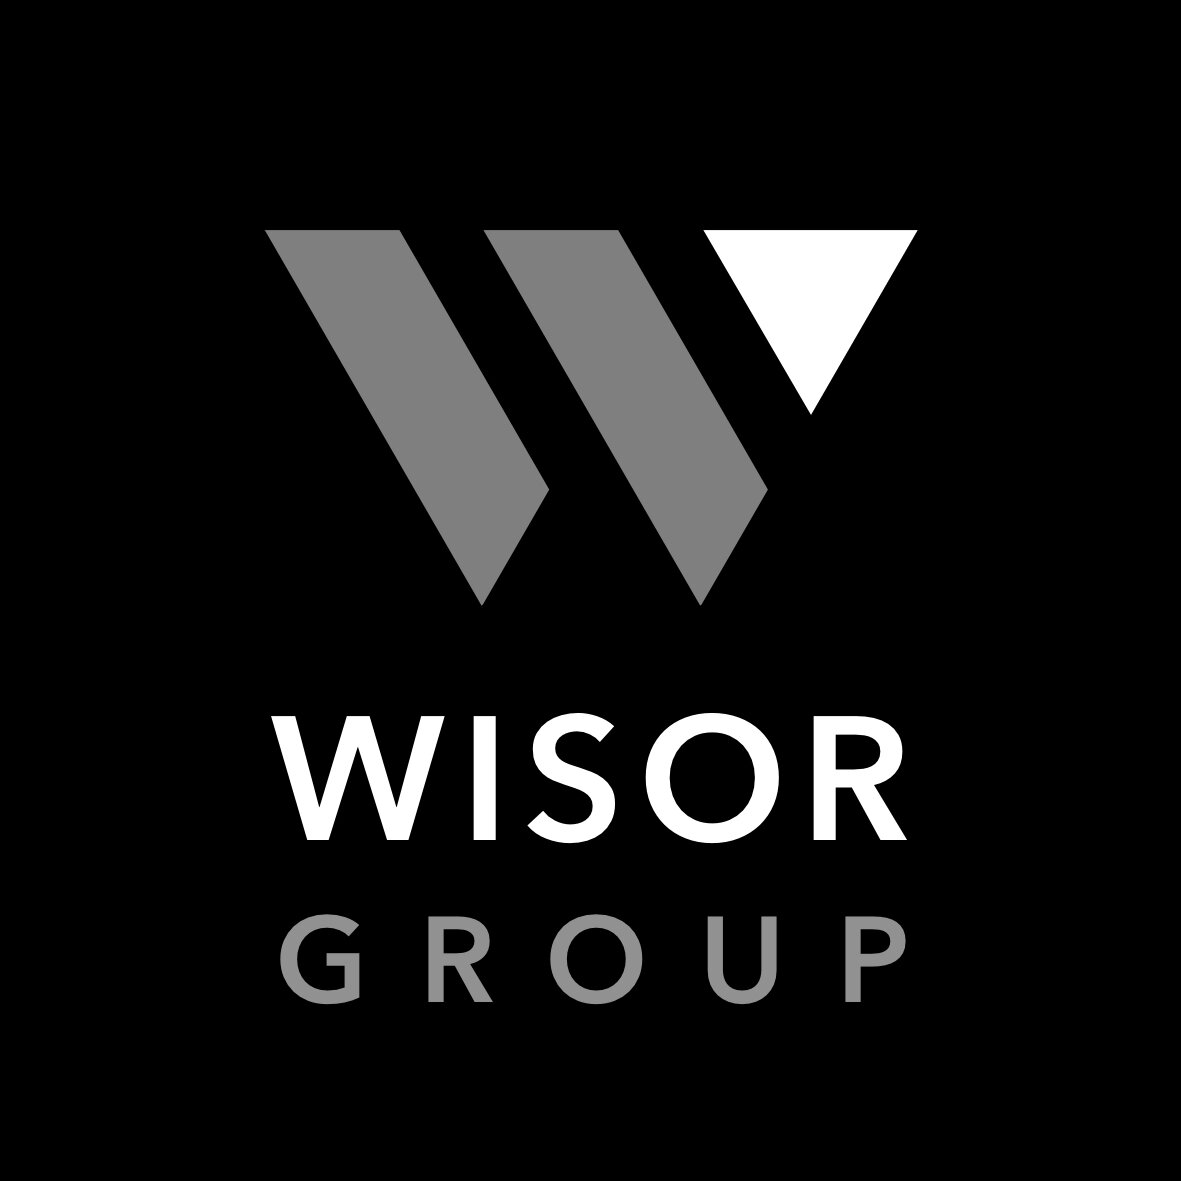 Wisor Group Logo.heic  For download click on image.